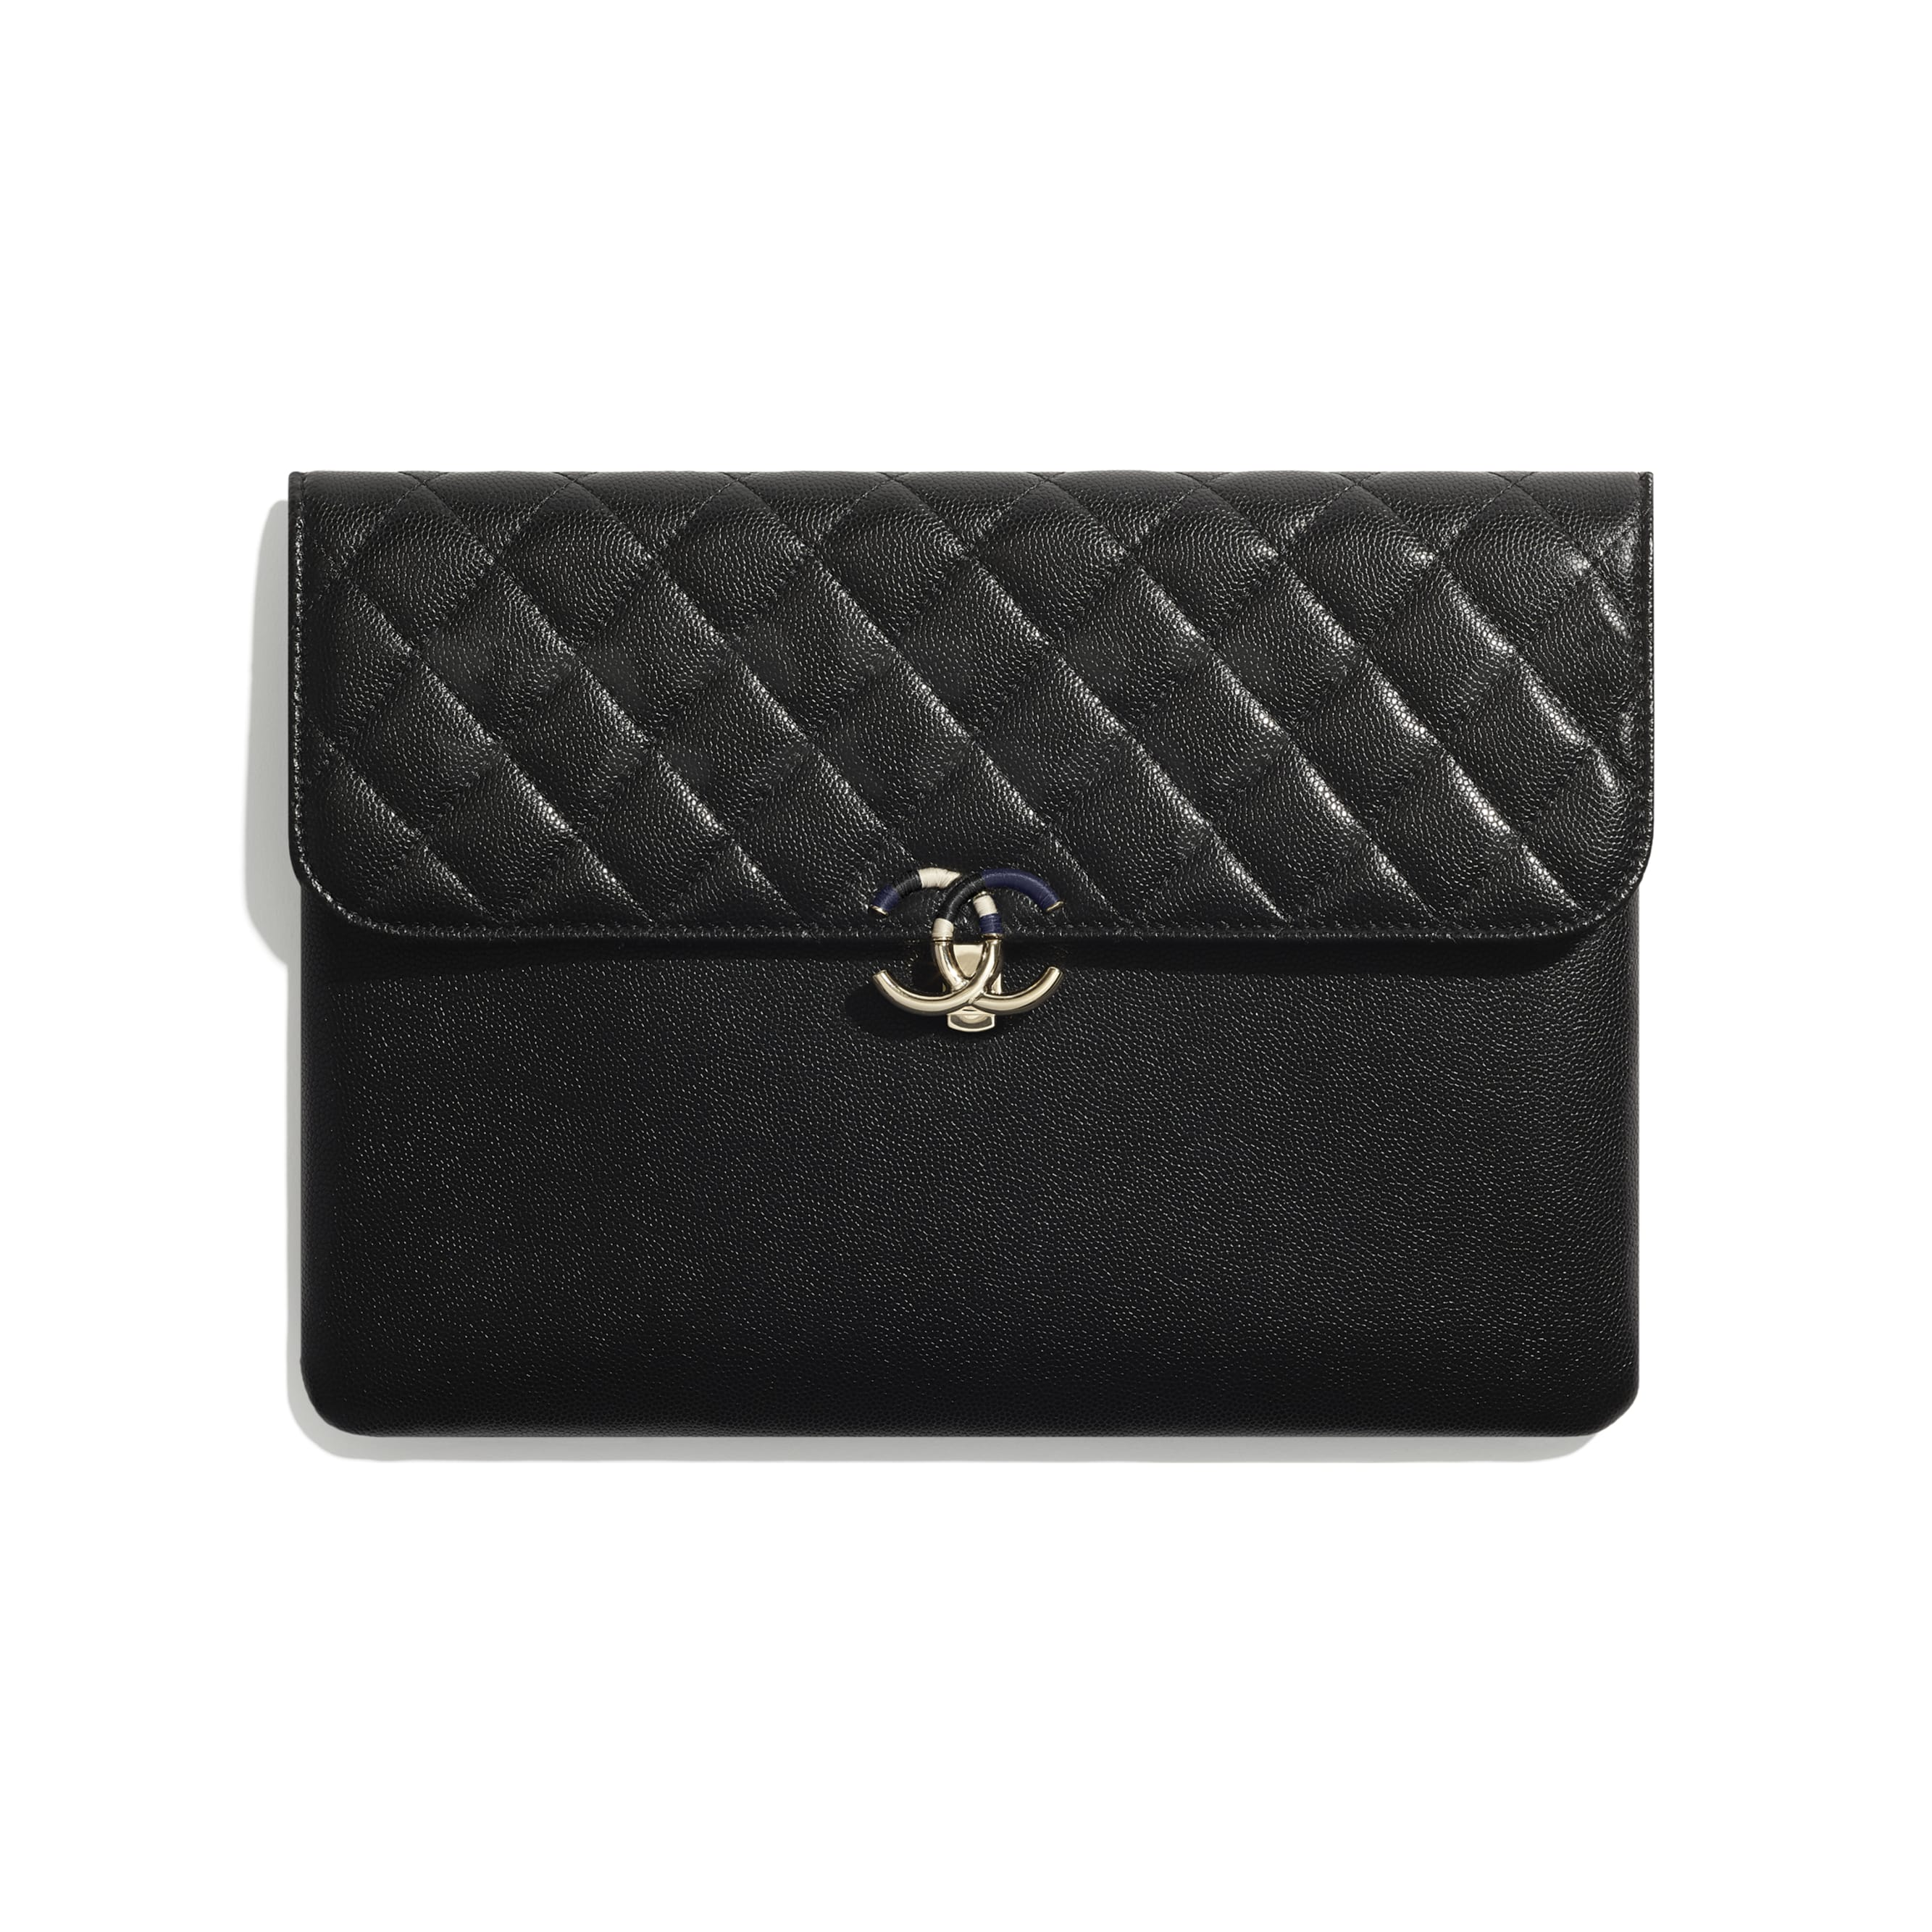 Flap Case - Black - Grained Calfskin & Gold-Tone Metal - CHANEL - Default view - see standard sized version